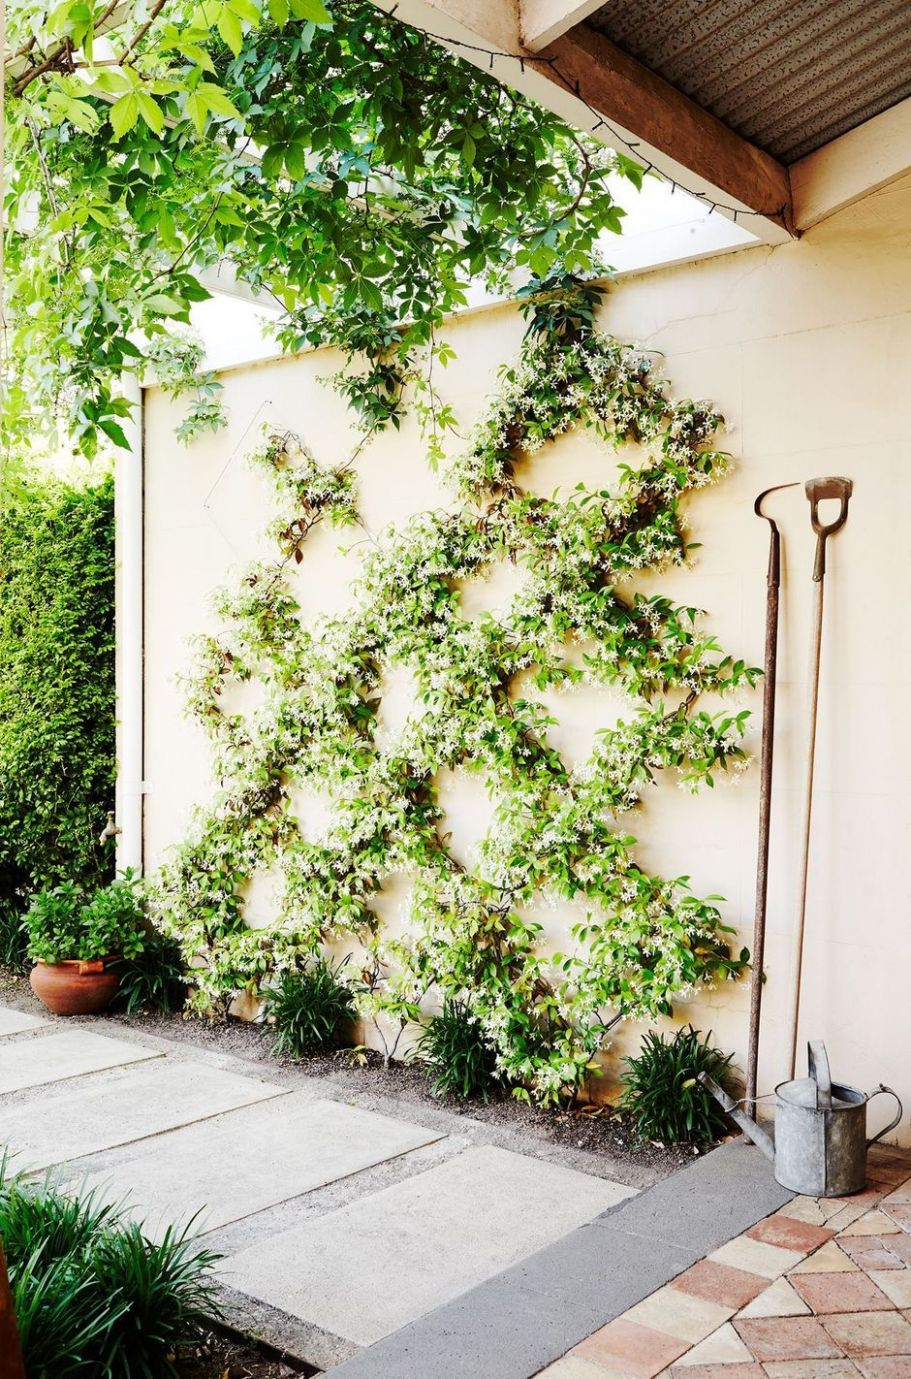 12 Impressive Climber and Creeper Wall Plants Ideas | Indoor ..